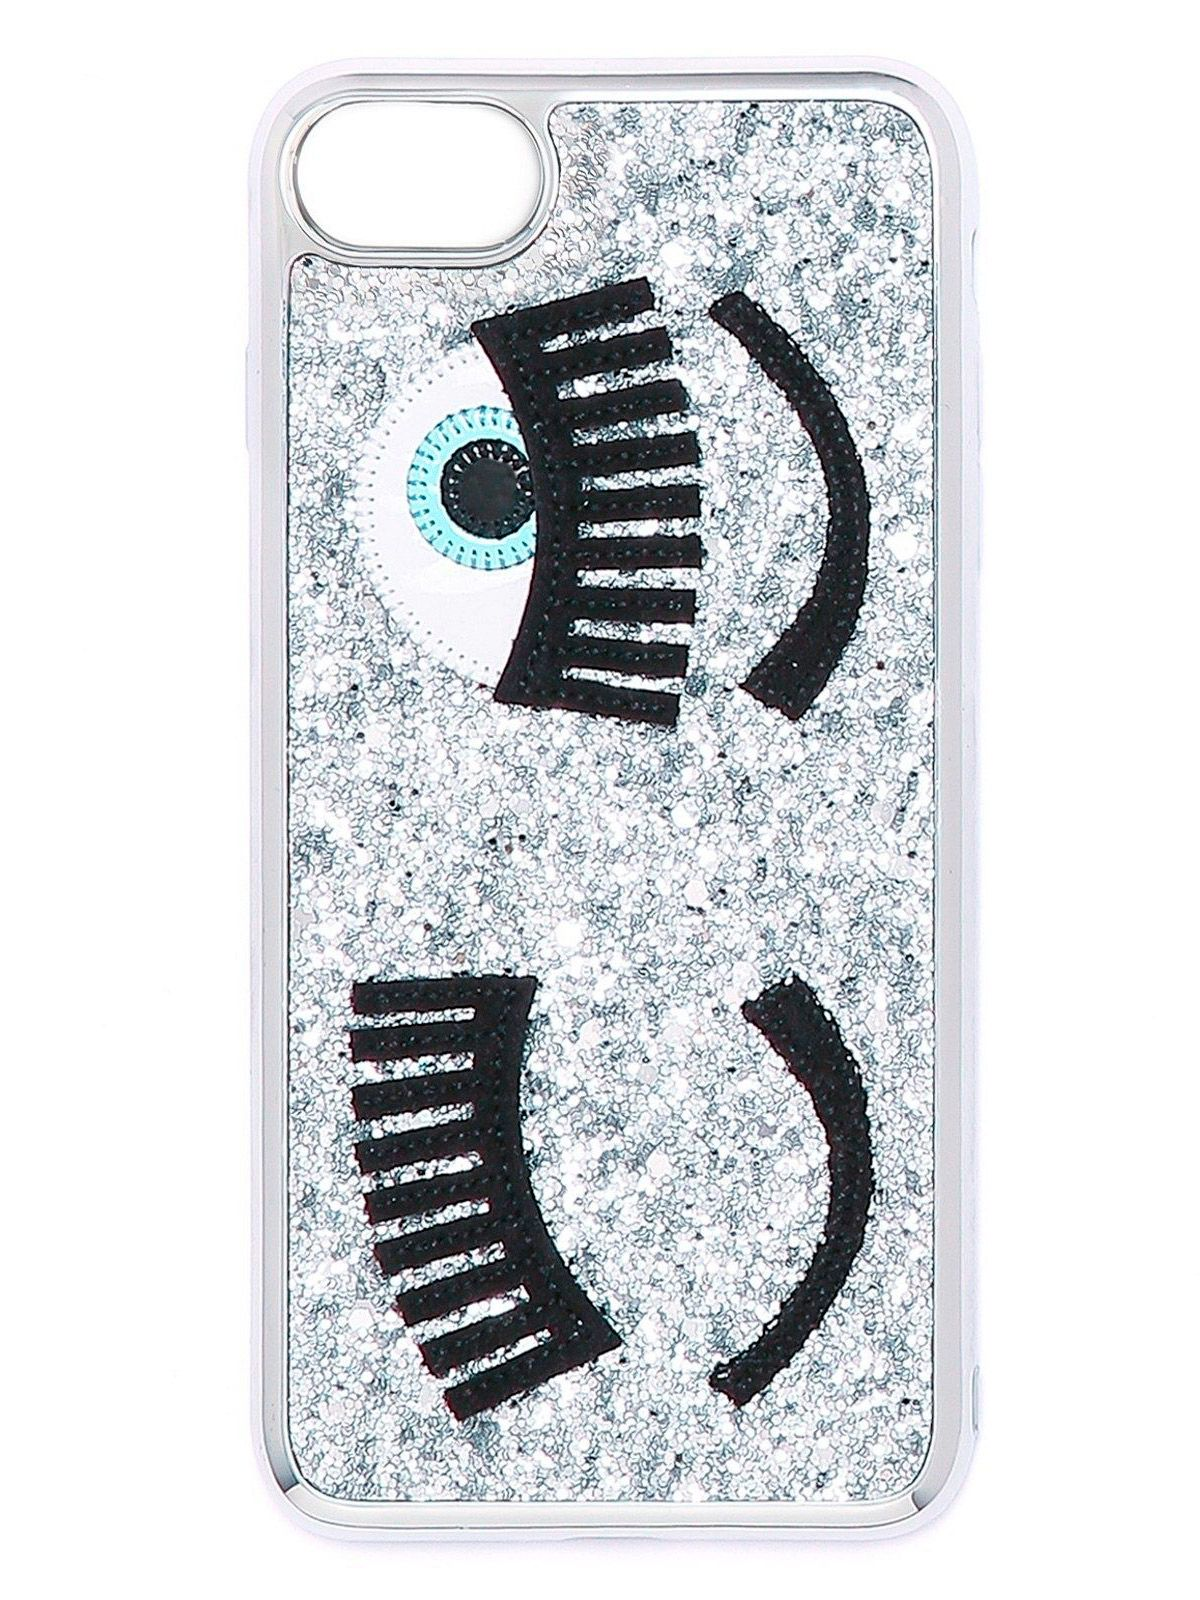 Chiara Ferragni Iphone Cover Flirting 8